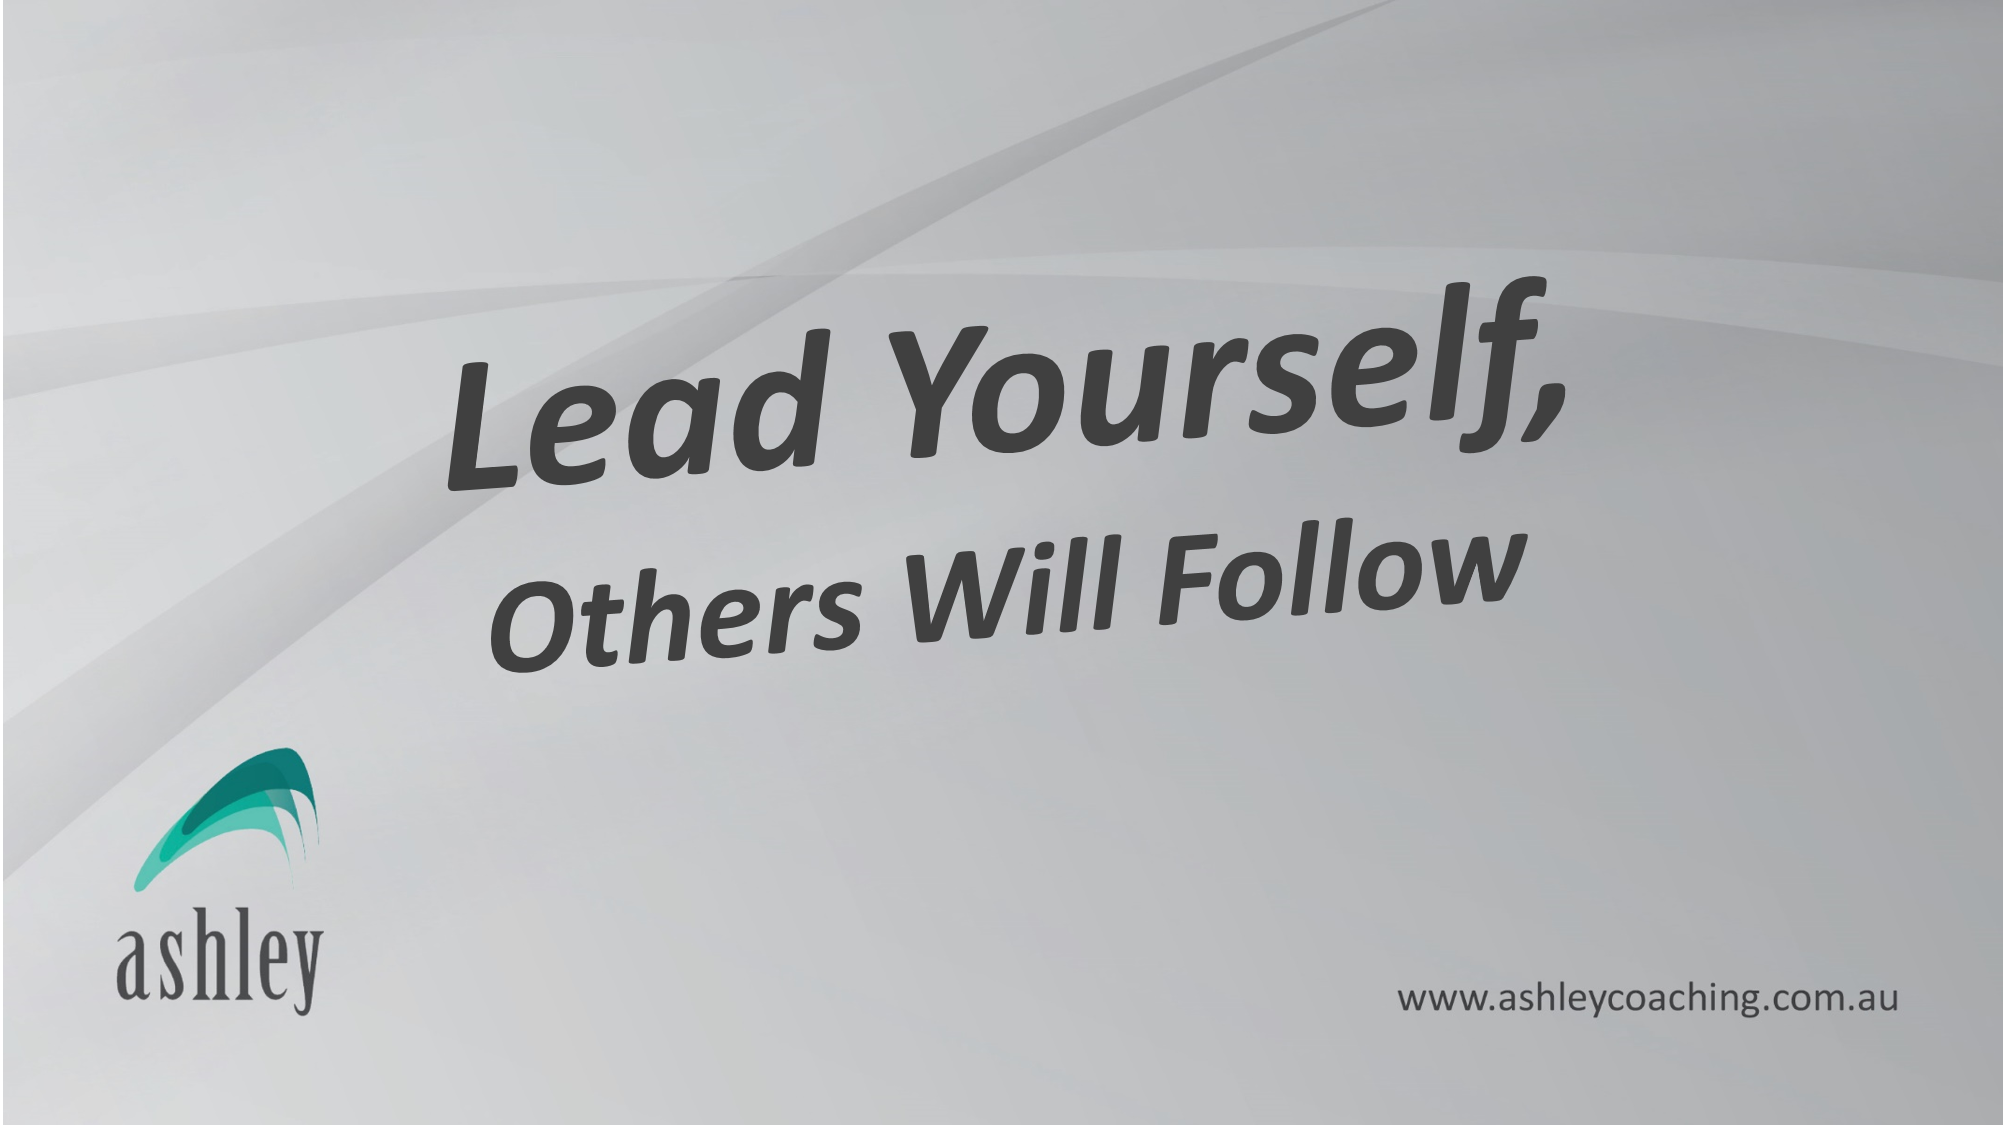 Lead Yourself, Others Will Follow